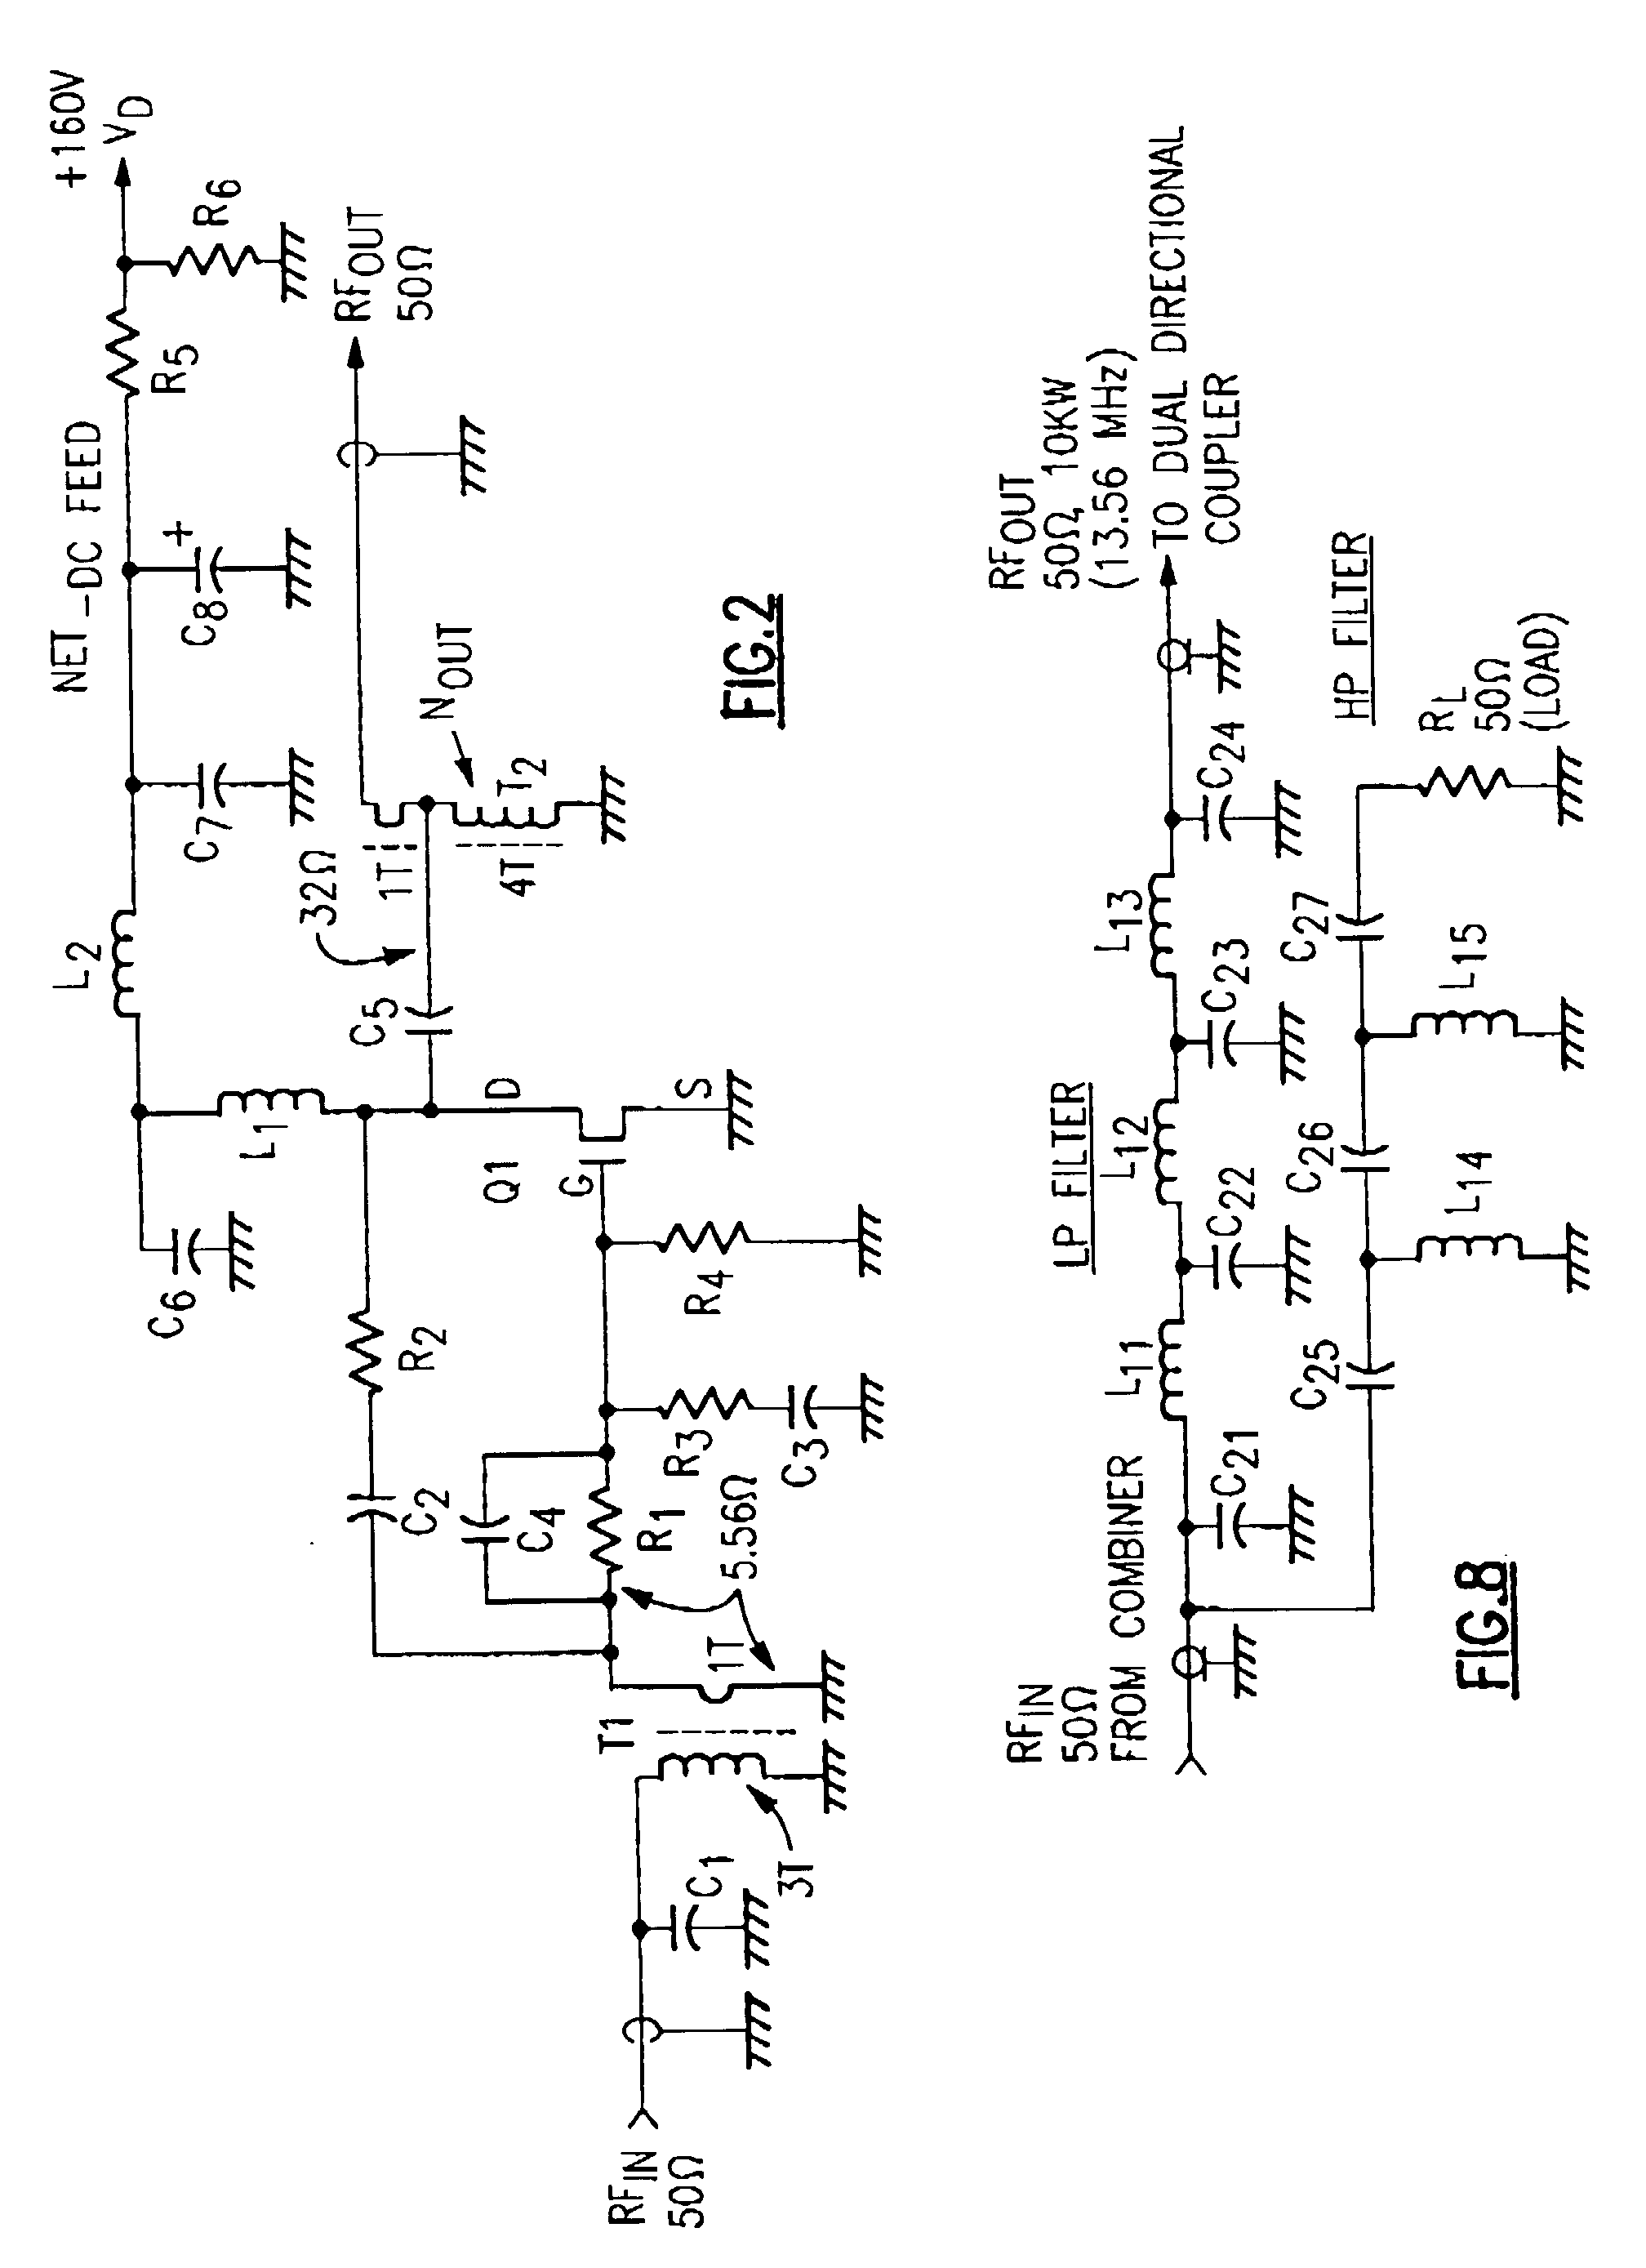 genset synchronizing panel wiring diagram